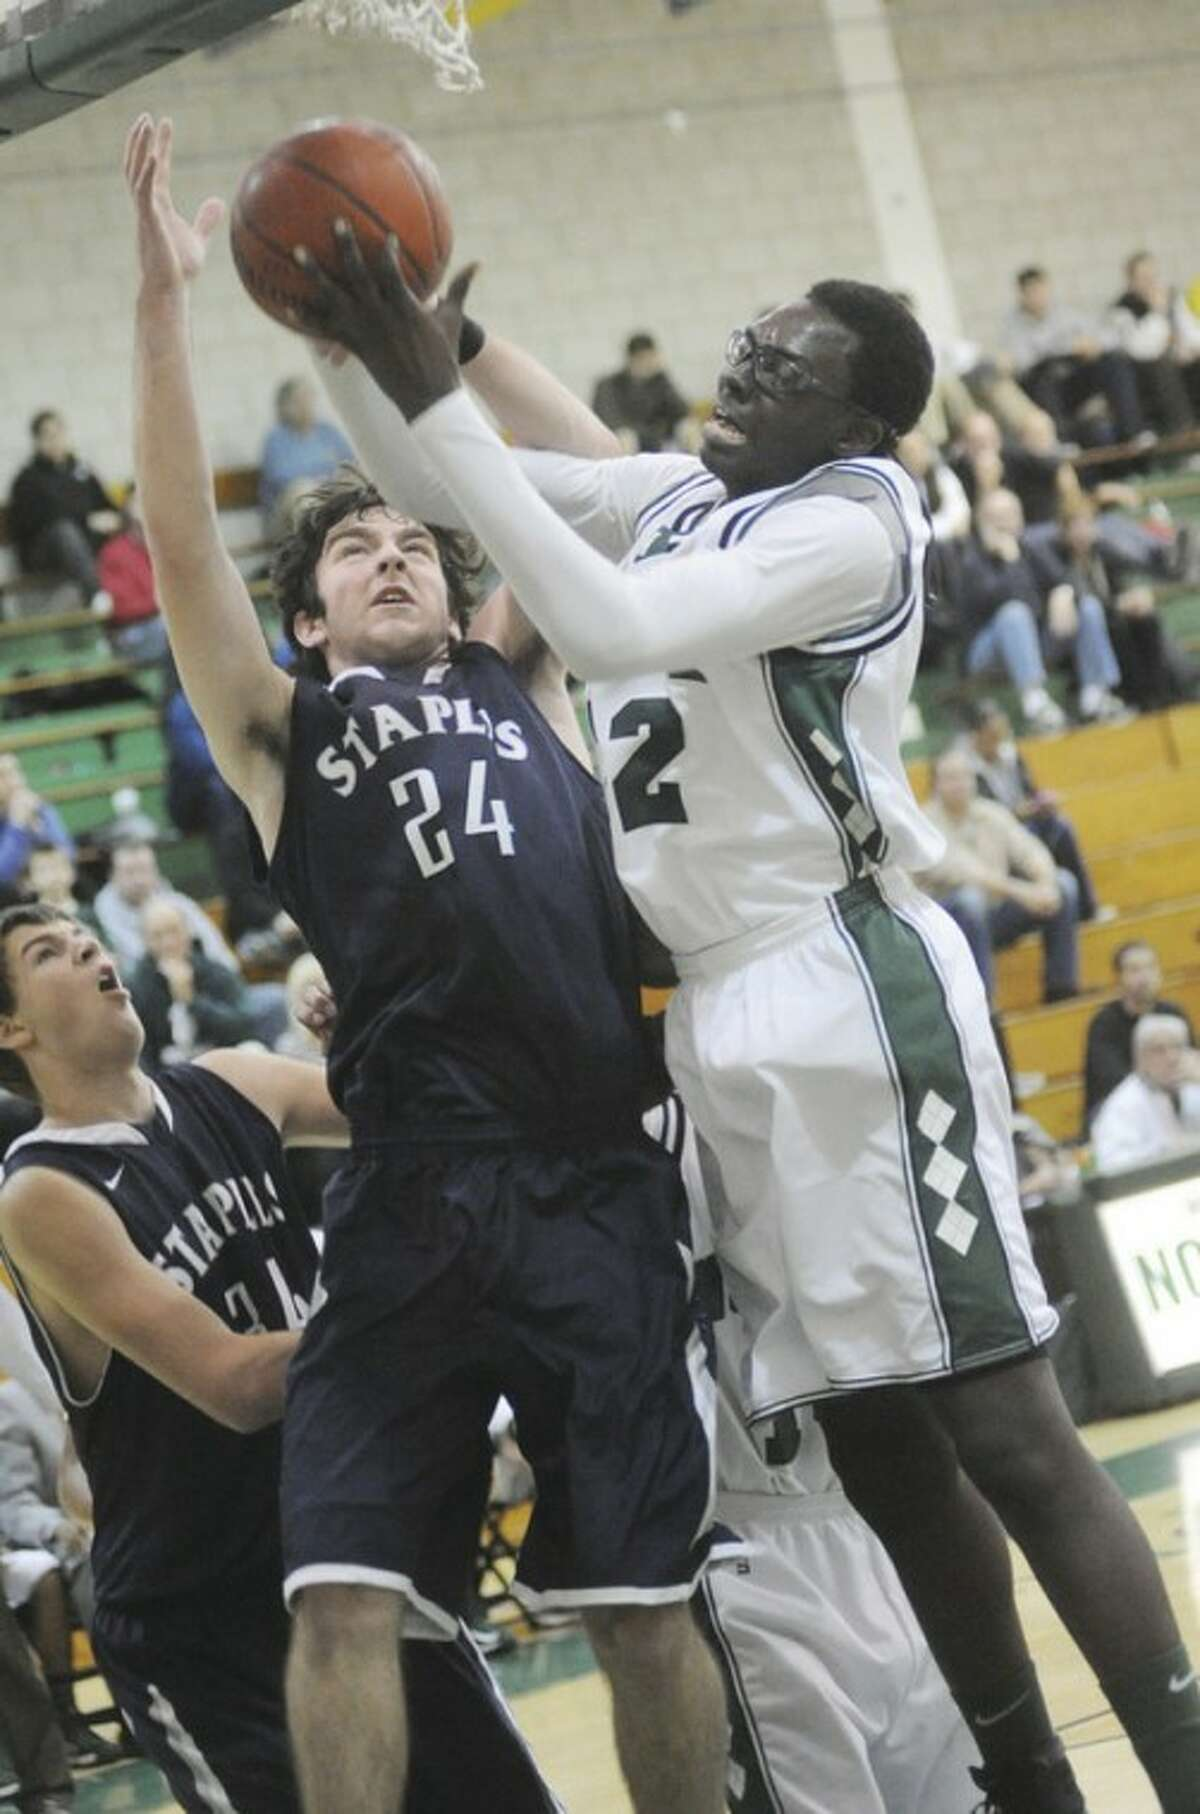 Hour photo/Matthew Vinci Norwalk's Roy Kane Jr., right, snags a rebound away from Ross Whelan of Staples during Tuesday night's game at Norwalk's Scarso gym. The Bears were forced into overtime before finally defeating the Wreckers, 84-75.